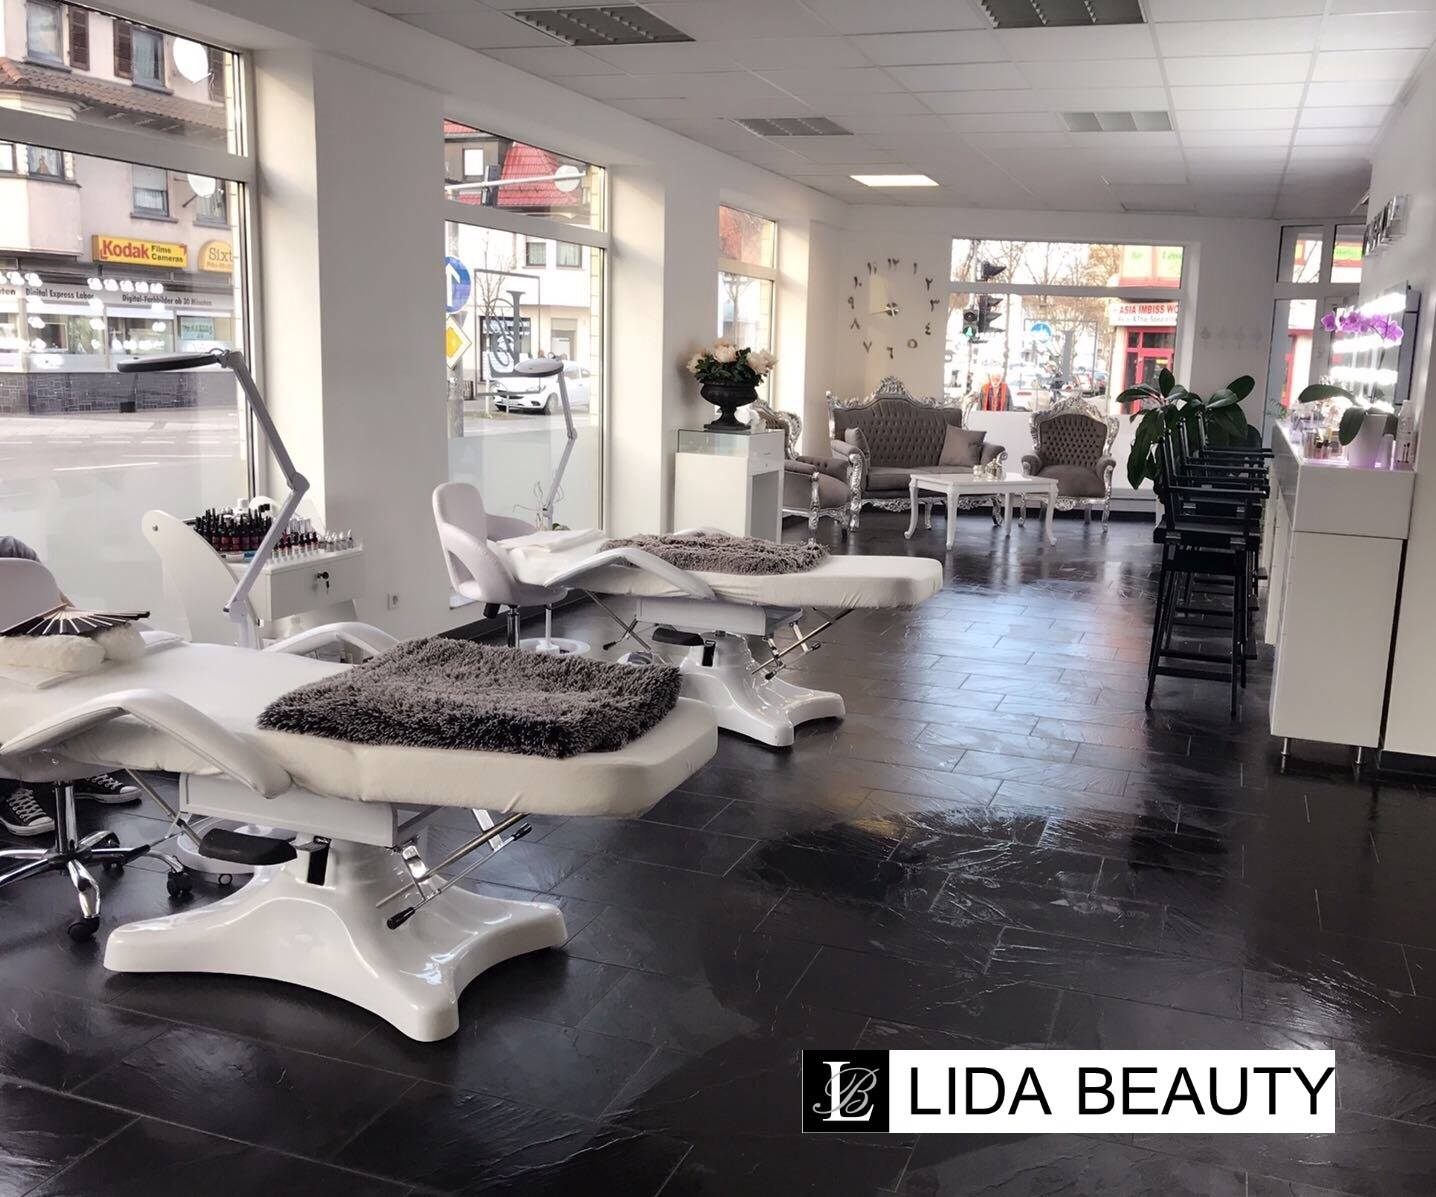 LB Lida Beauty - Permanent Make Up Bereich